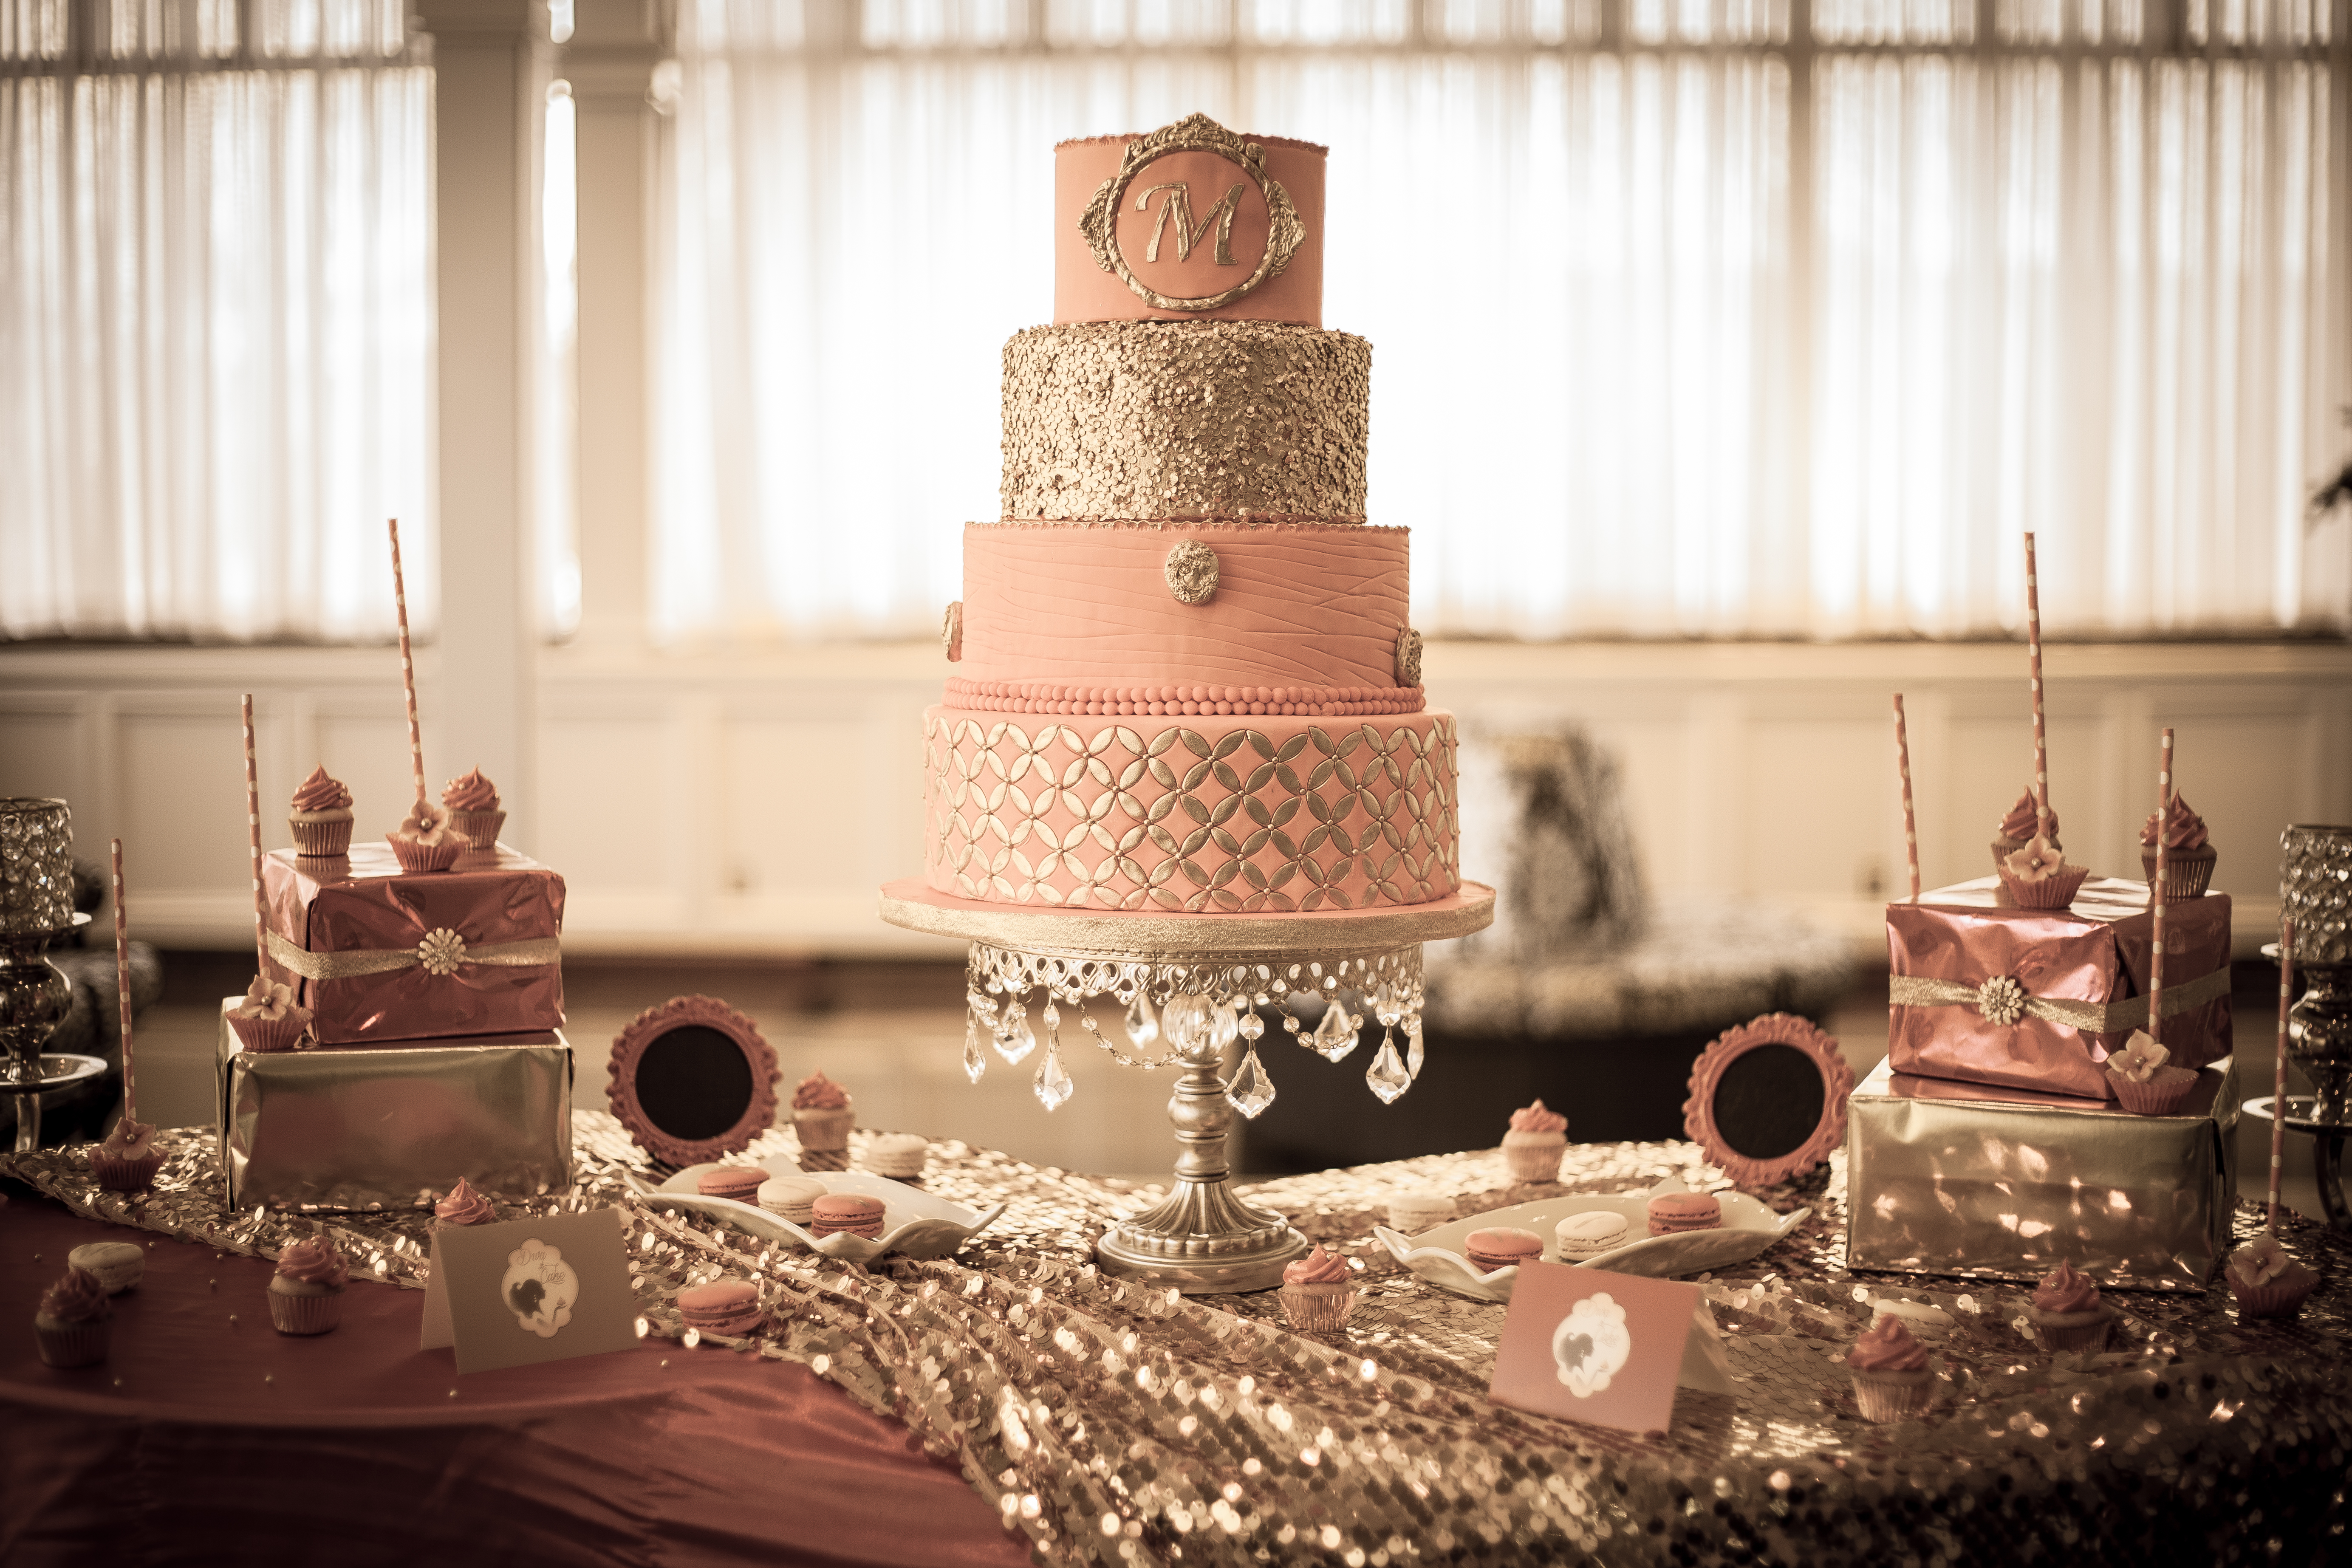 DIVA OF CAKE SWEET TABLE